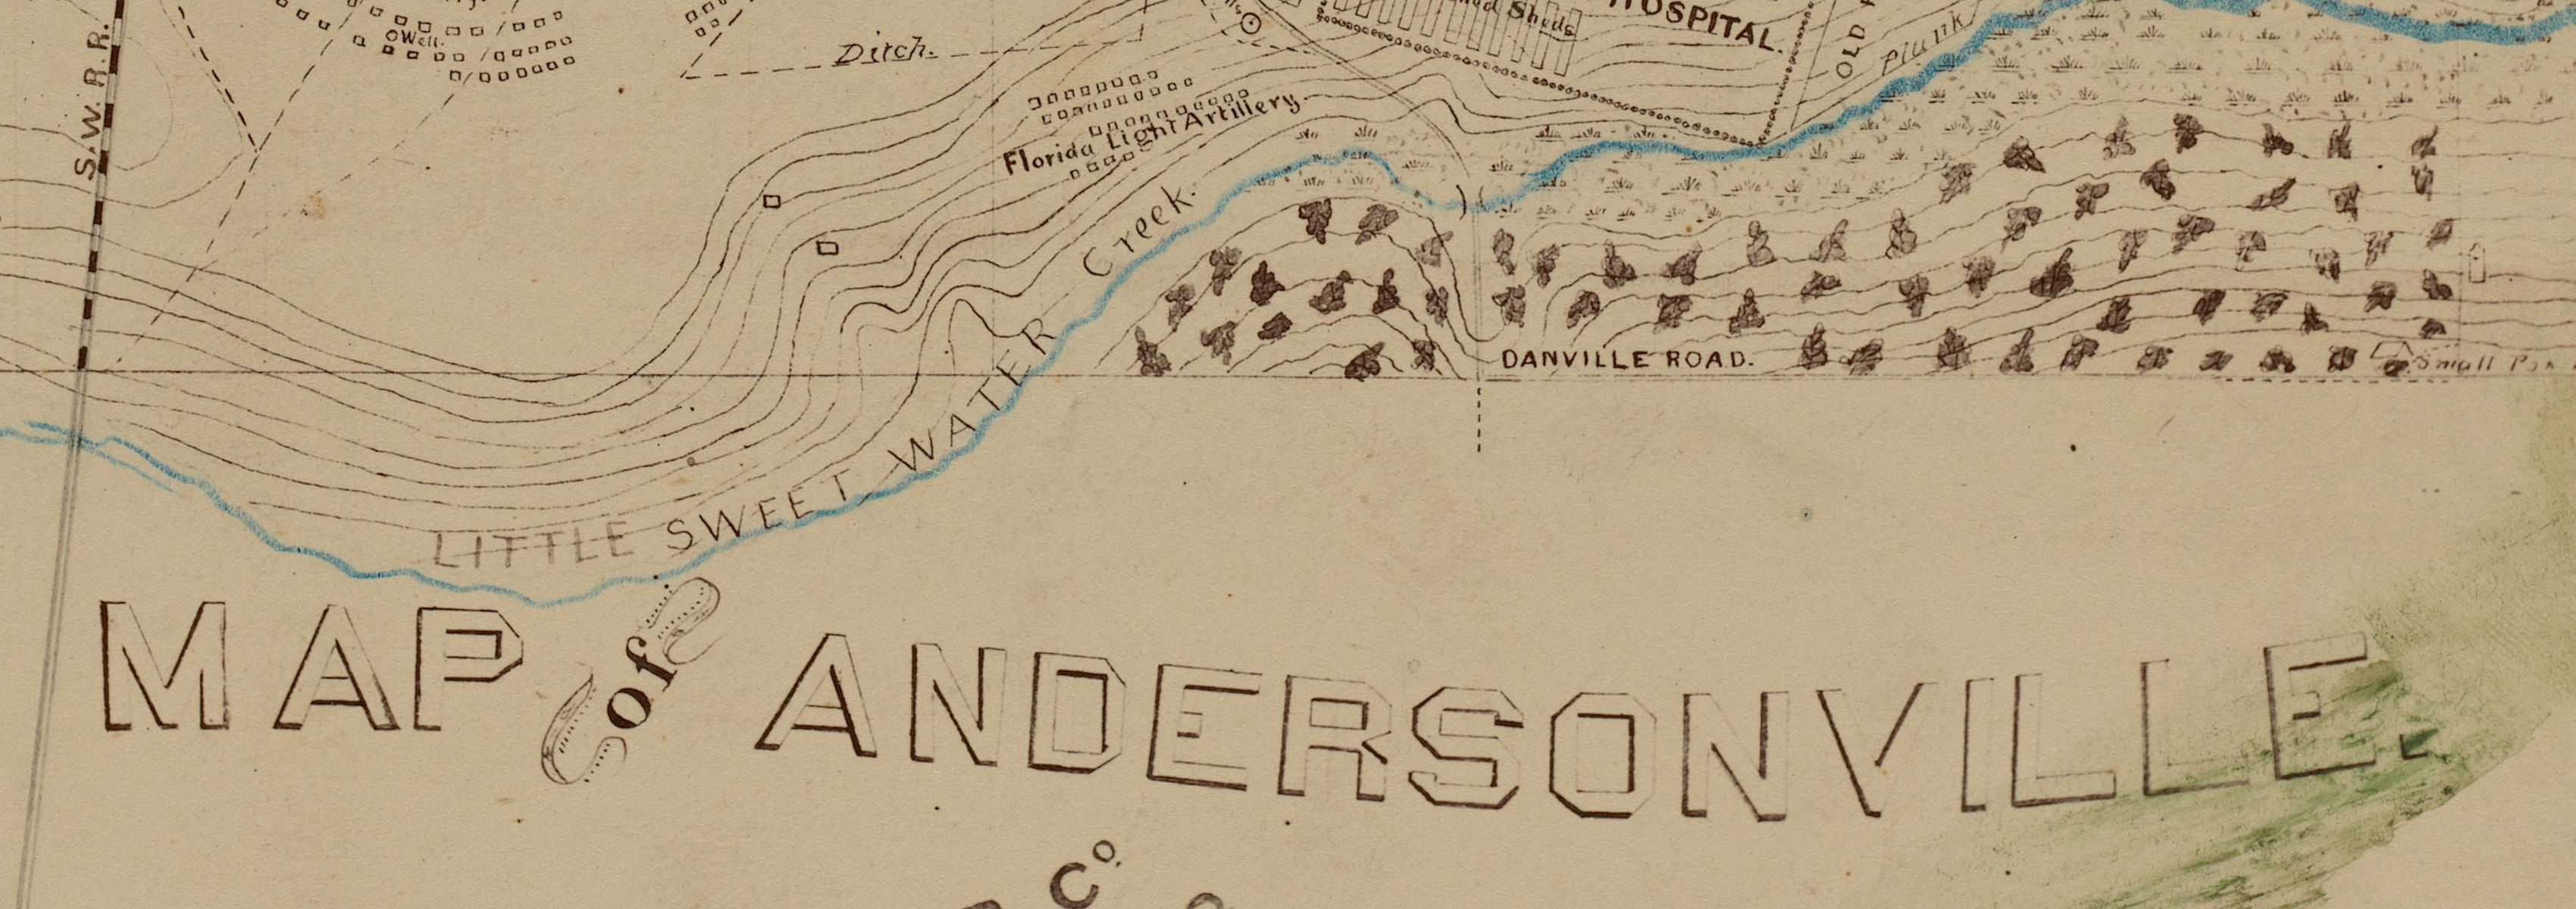 A Civil War map goes on trial